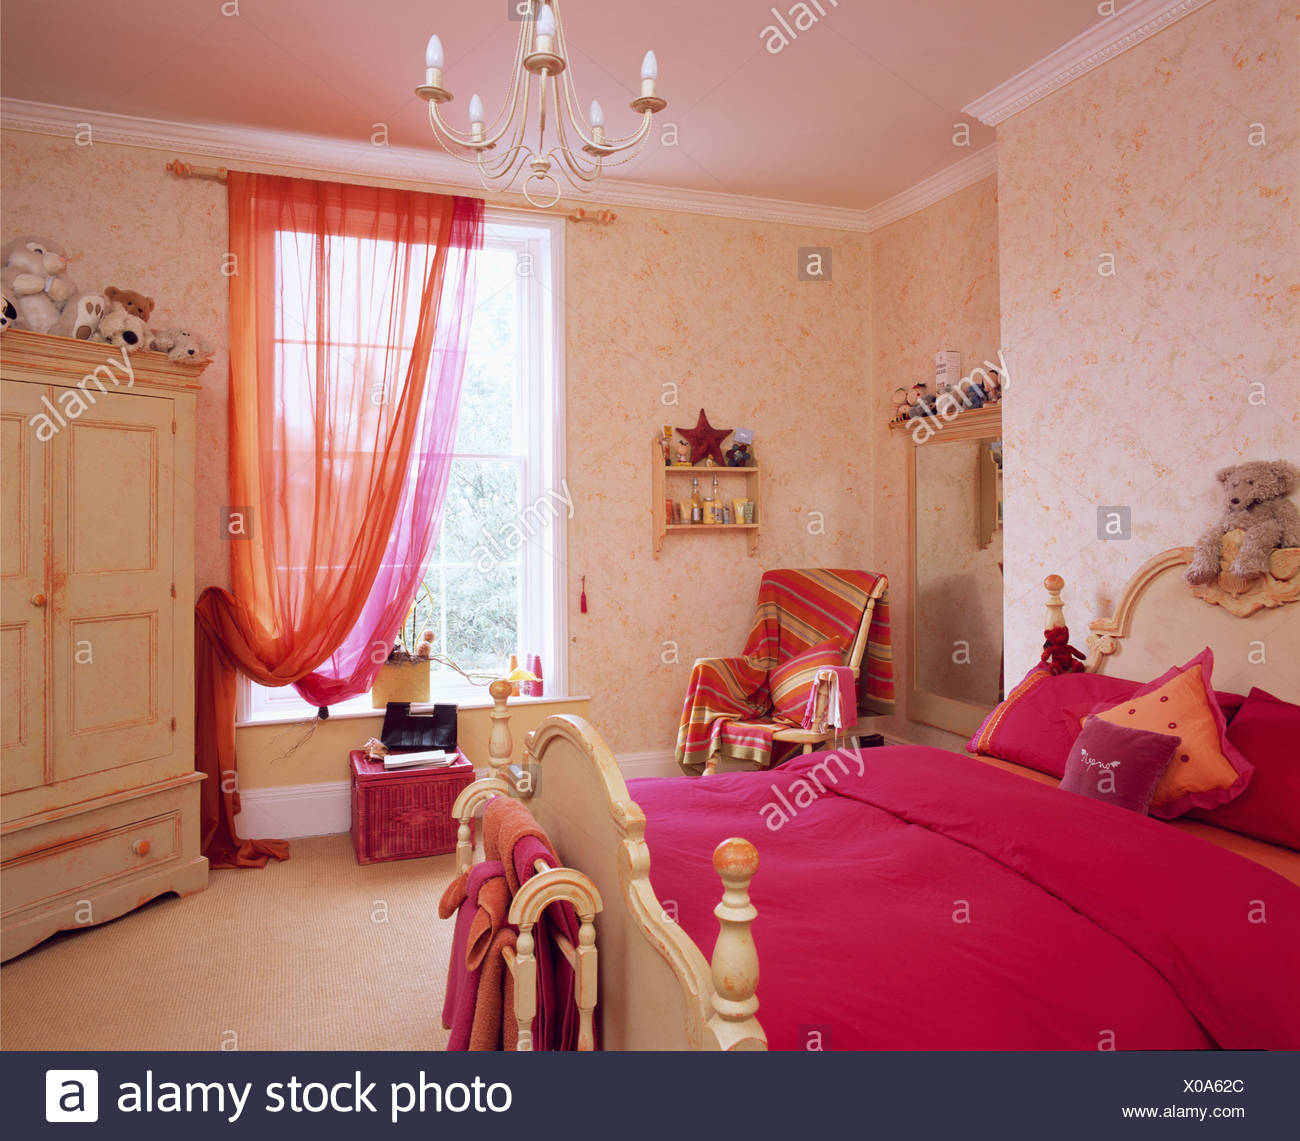 Bright pink bed cover on bed in teenage bedroom with pink ...